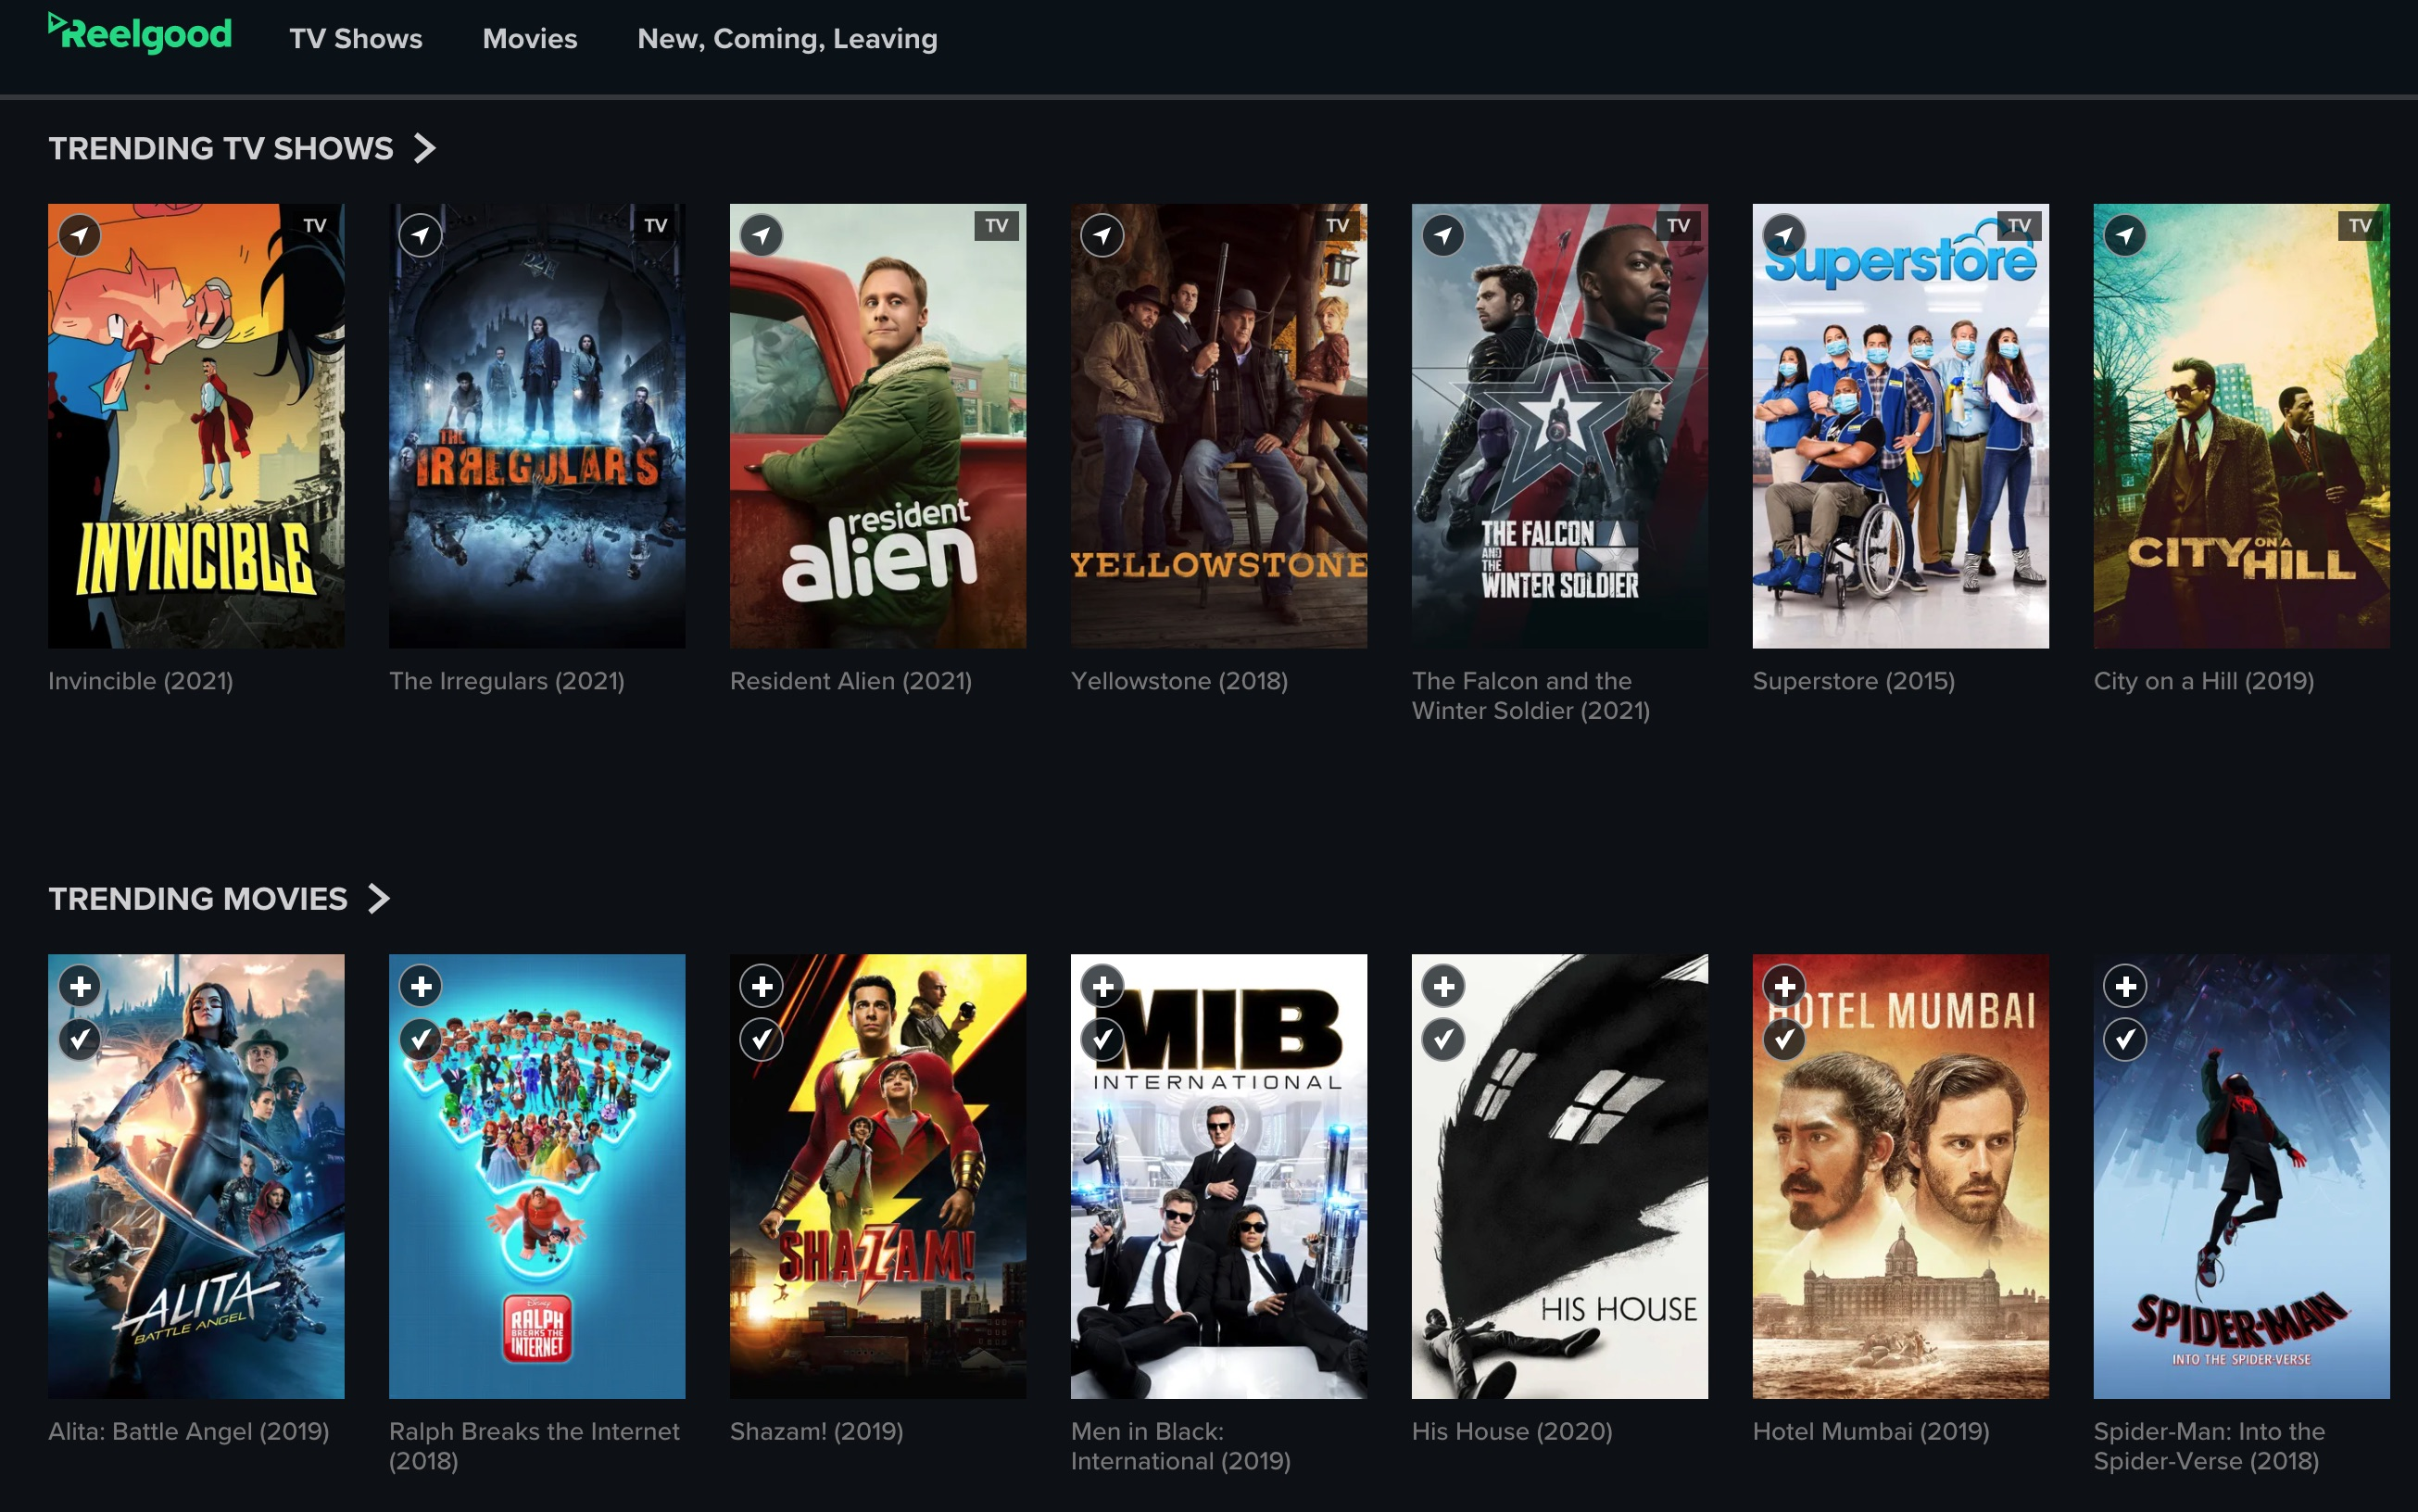 Reelgood shows trending shows and movies on Prime, Netflix, Peacock, fuboTV, and more.